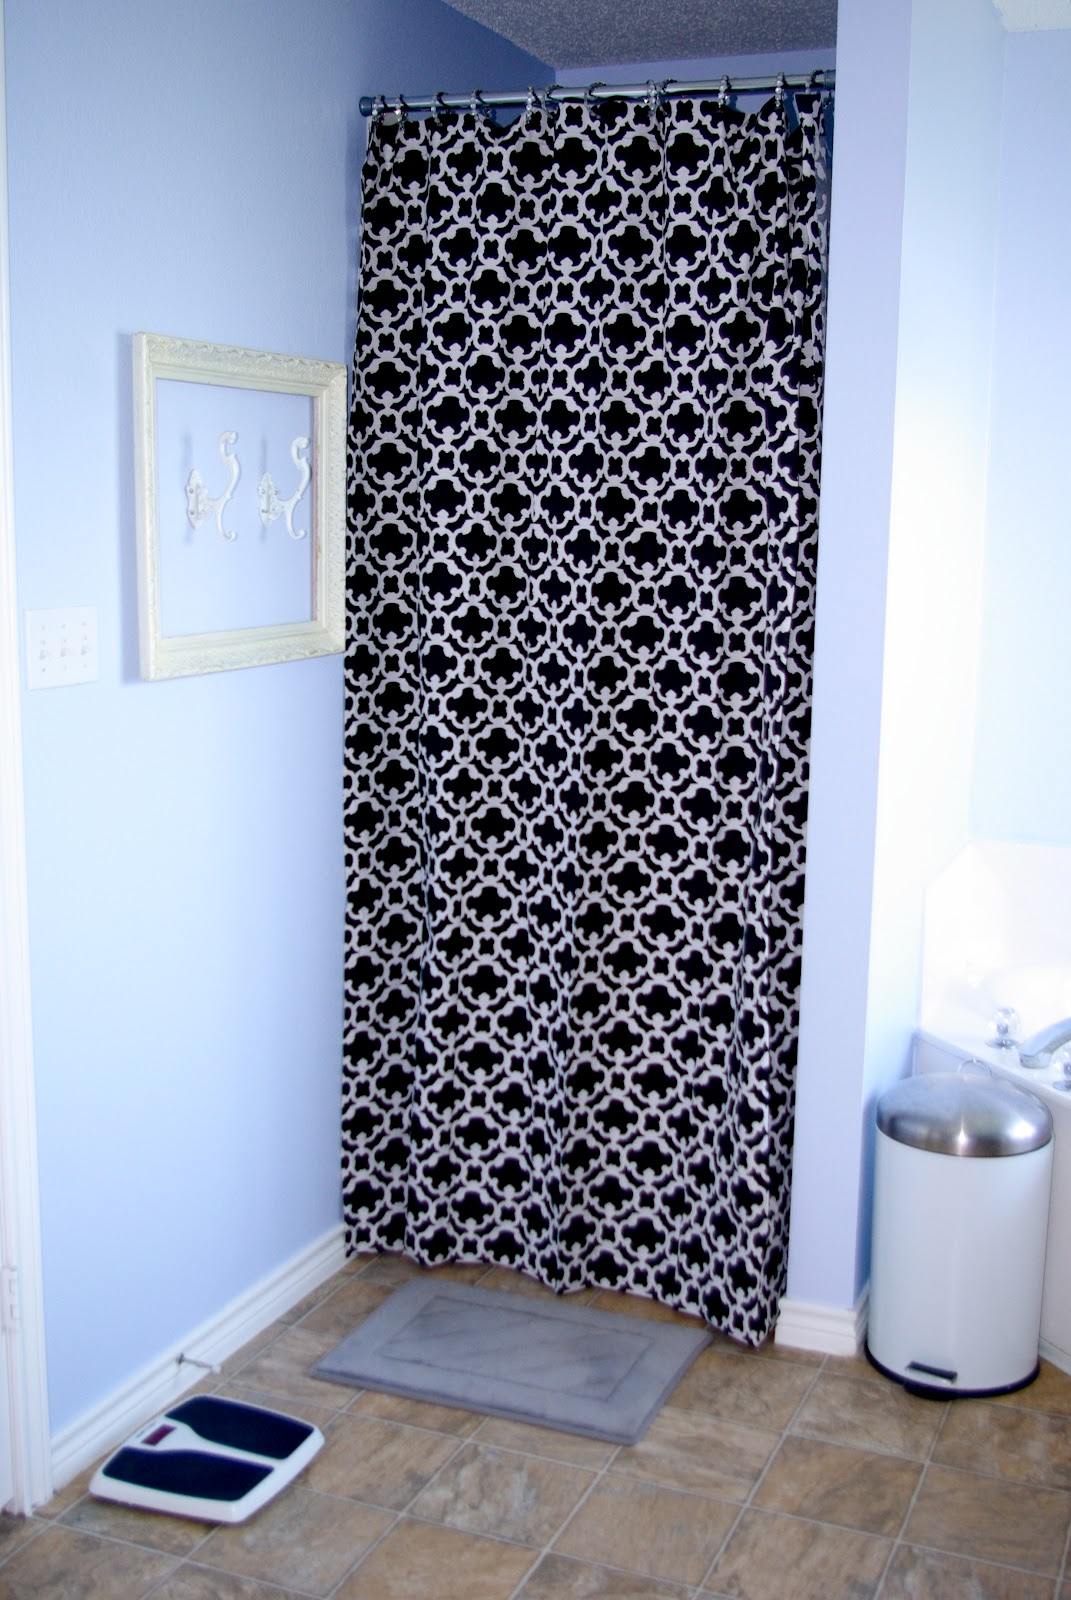 Skinny Meg: A cheap solution for an ugly shower